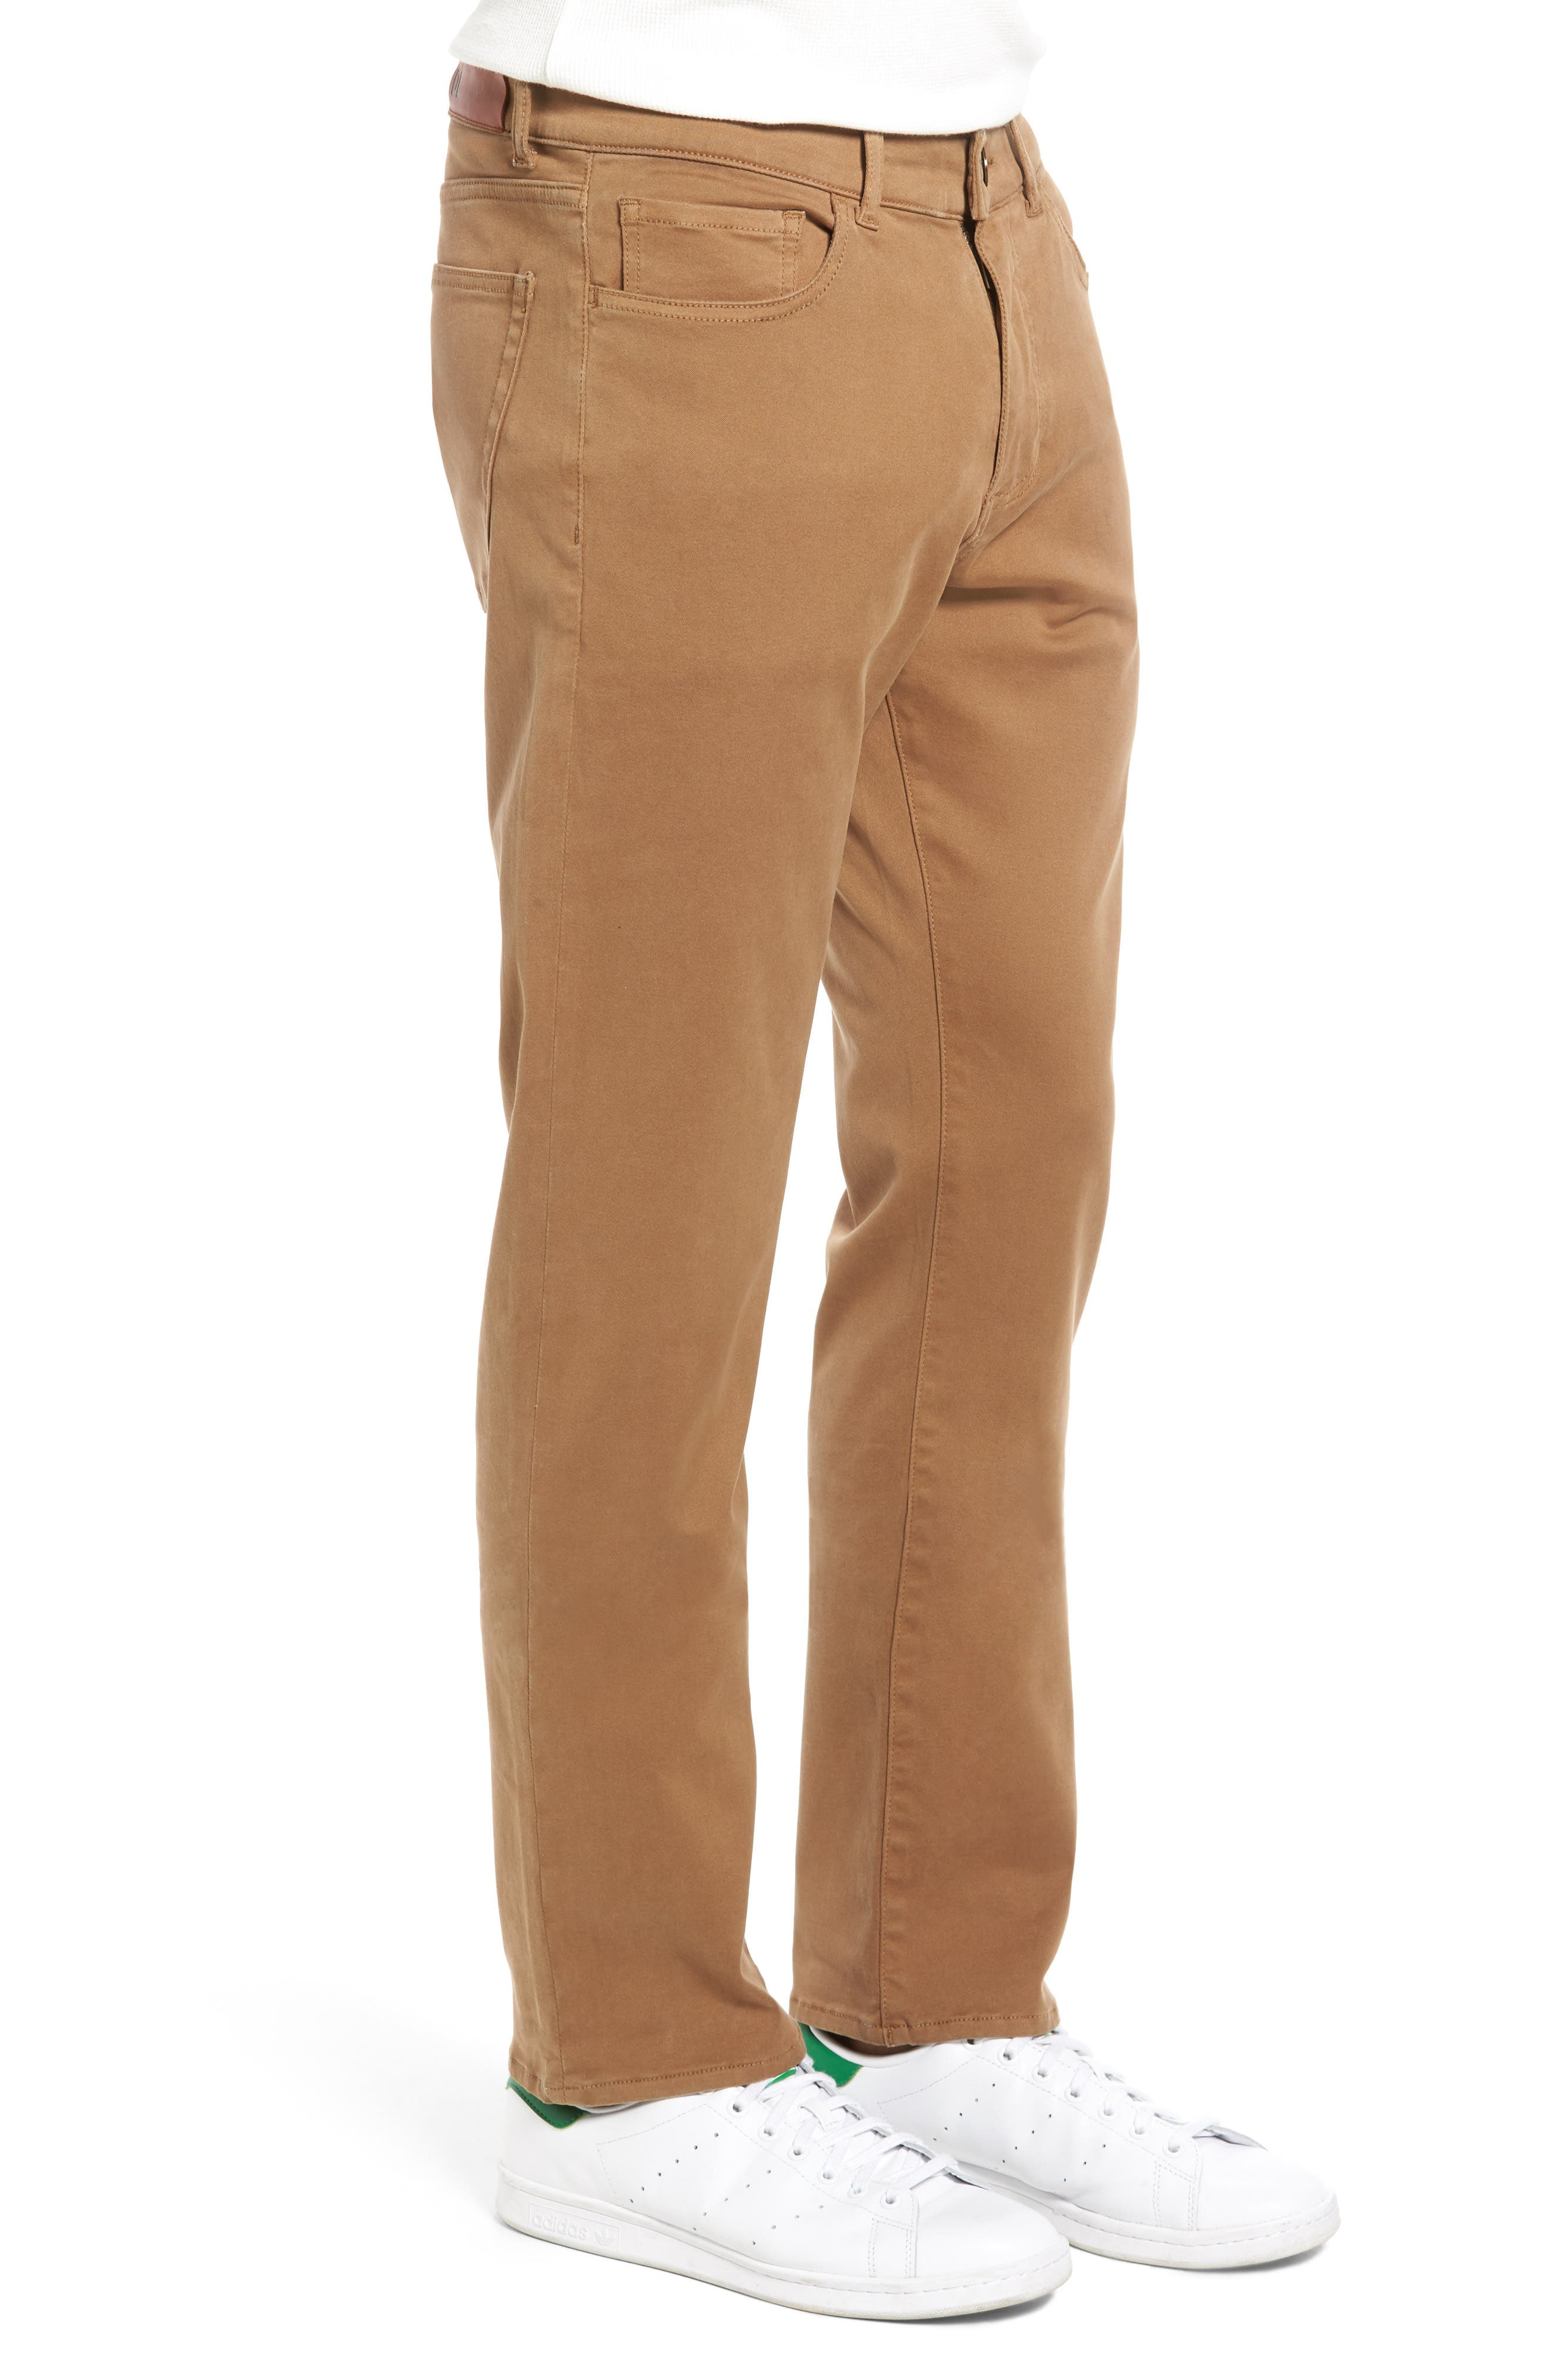 Russell Slim Fit Sateen Twill Pants,                             Alternate thumbnail 26, color,